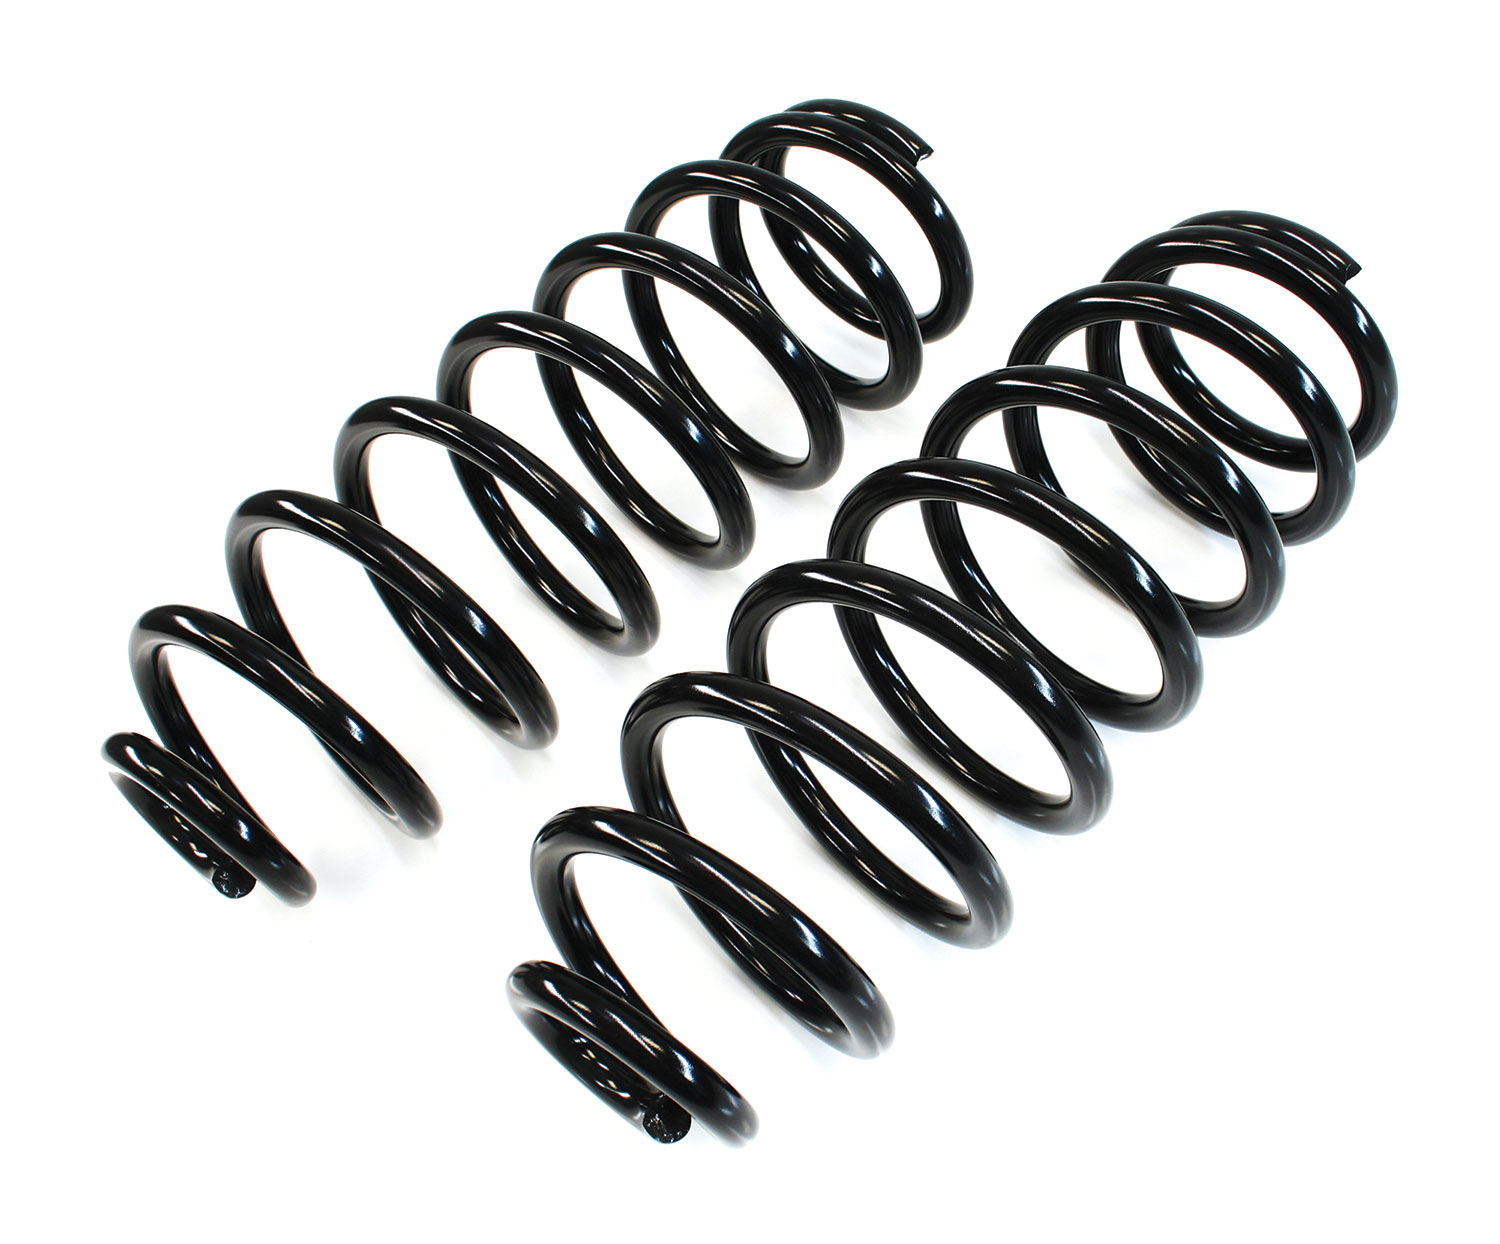 Teraflex Rear Coil Springs  - JK 4dr 1.5in/JK 2dr 2.5in